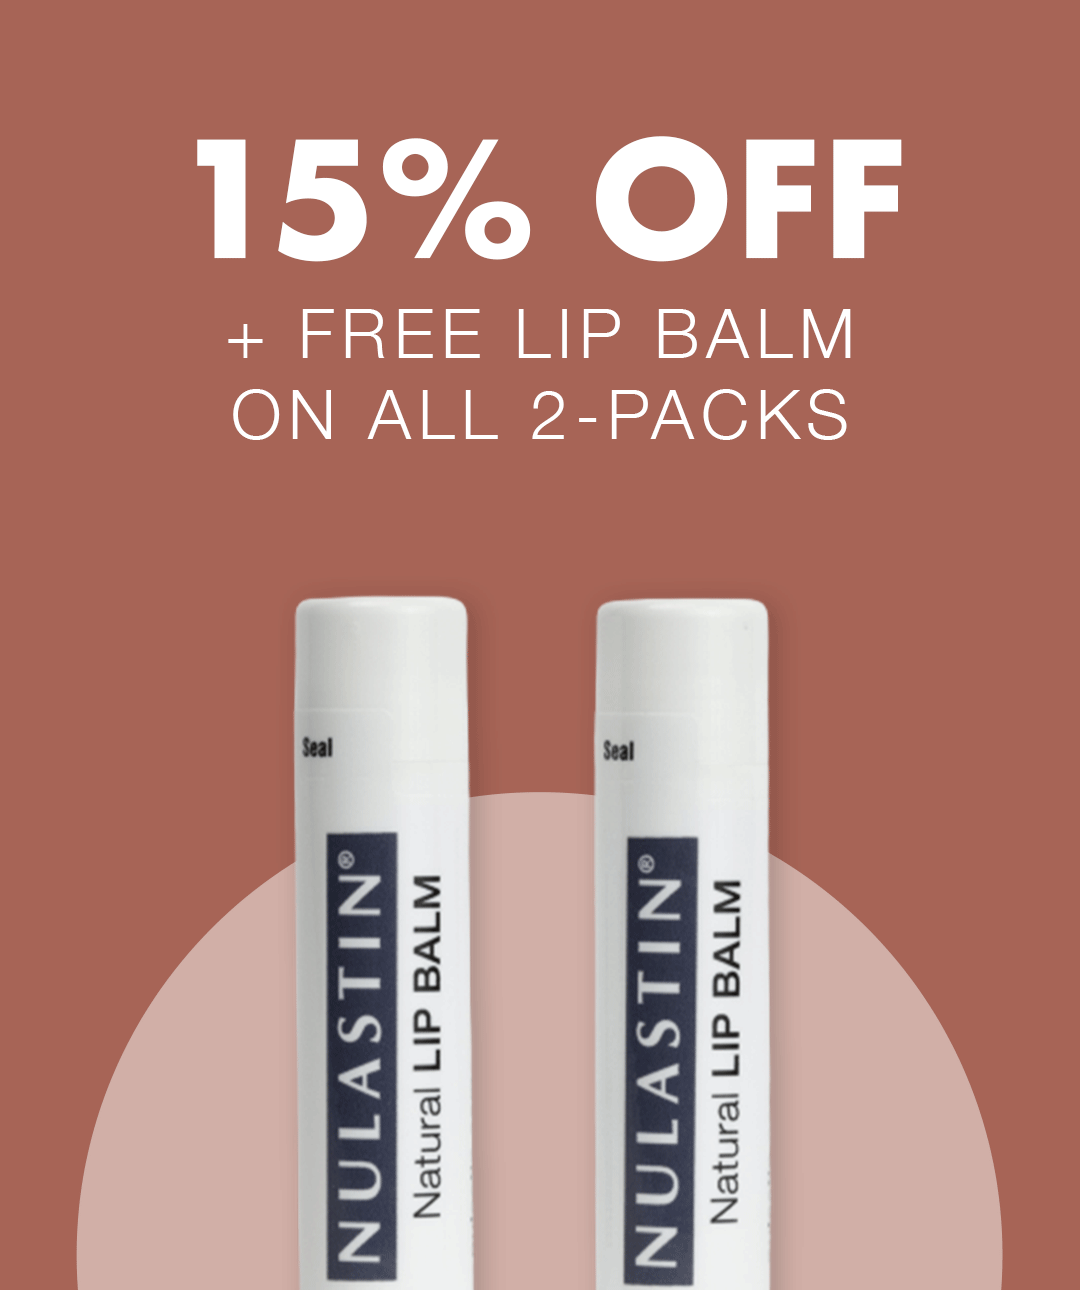 SUMMER SALE — Get 15% Off All 2-Packs + Free 2-Pack Of Lip Balm On All Orders